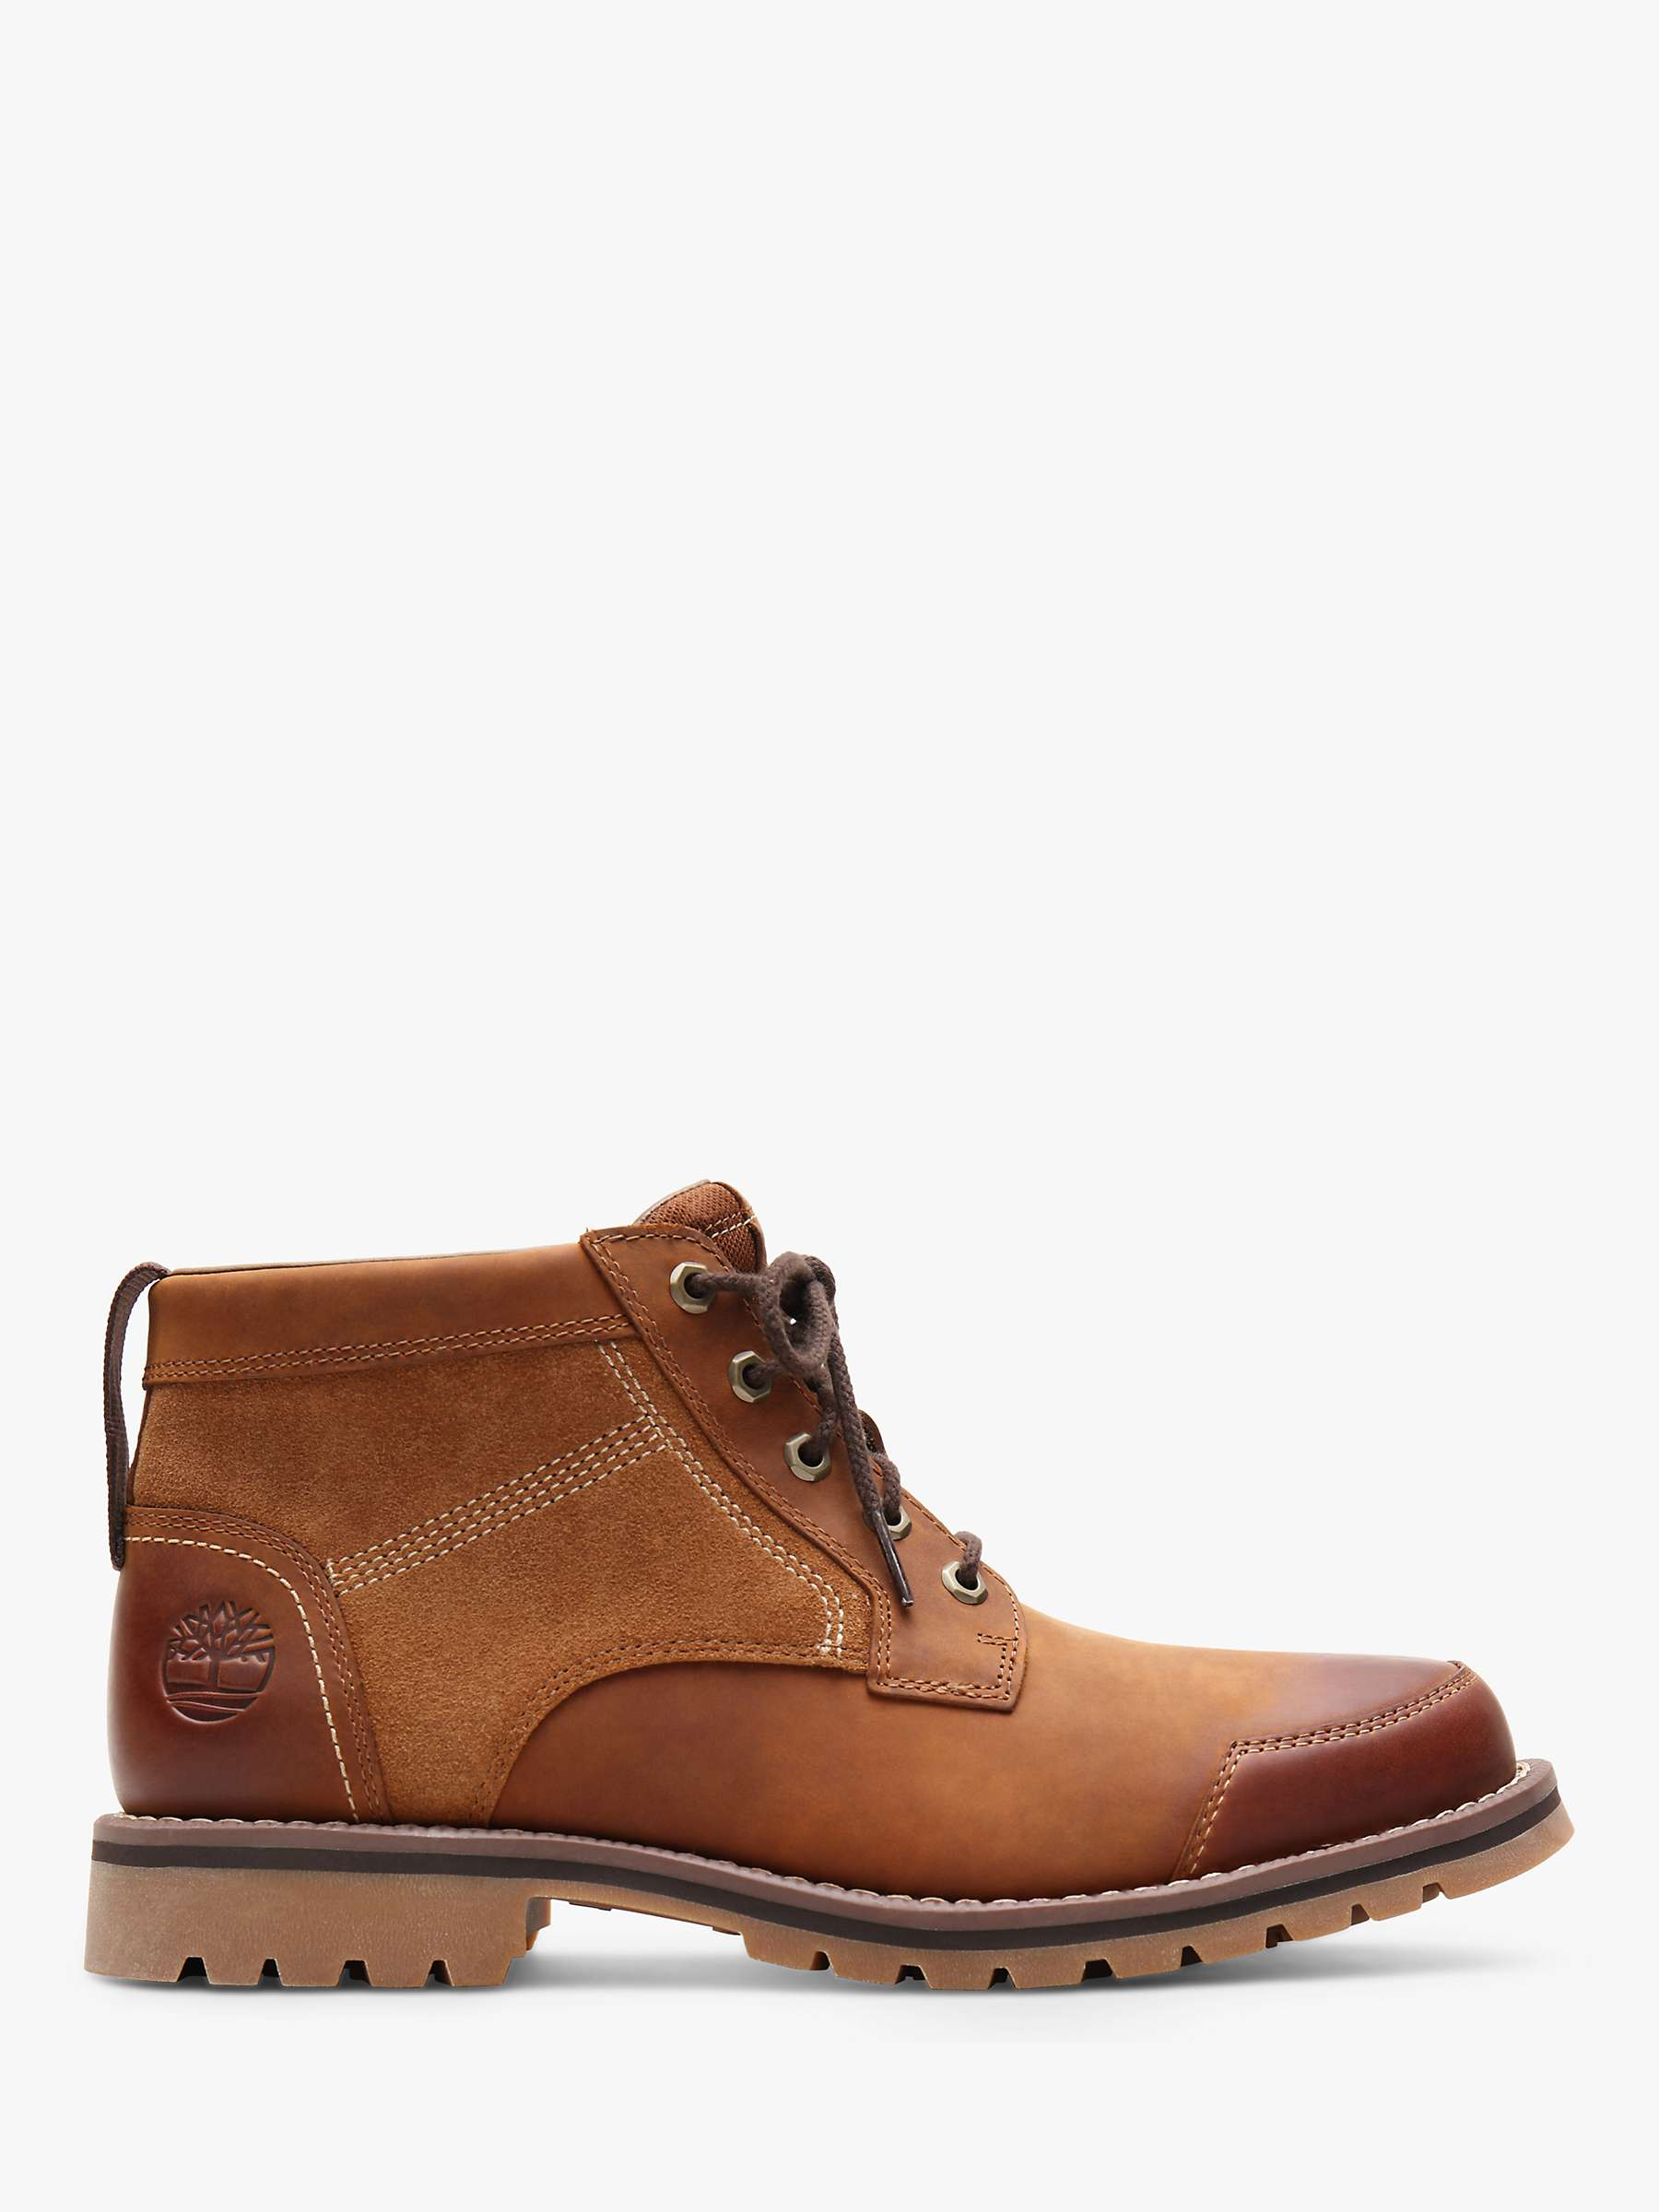 sombrero Explícito letal  Timberland Larchmont Chukka Boot, Medium Brown at John Lewis & Partners